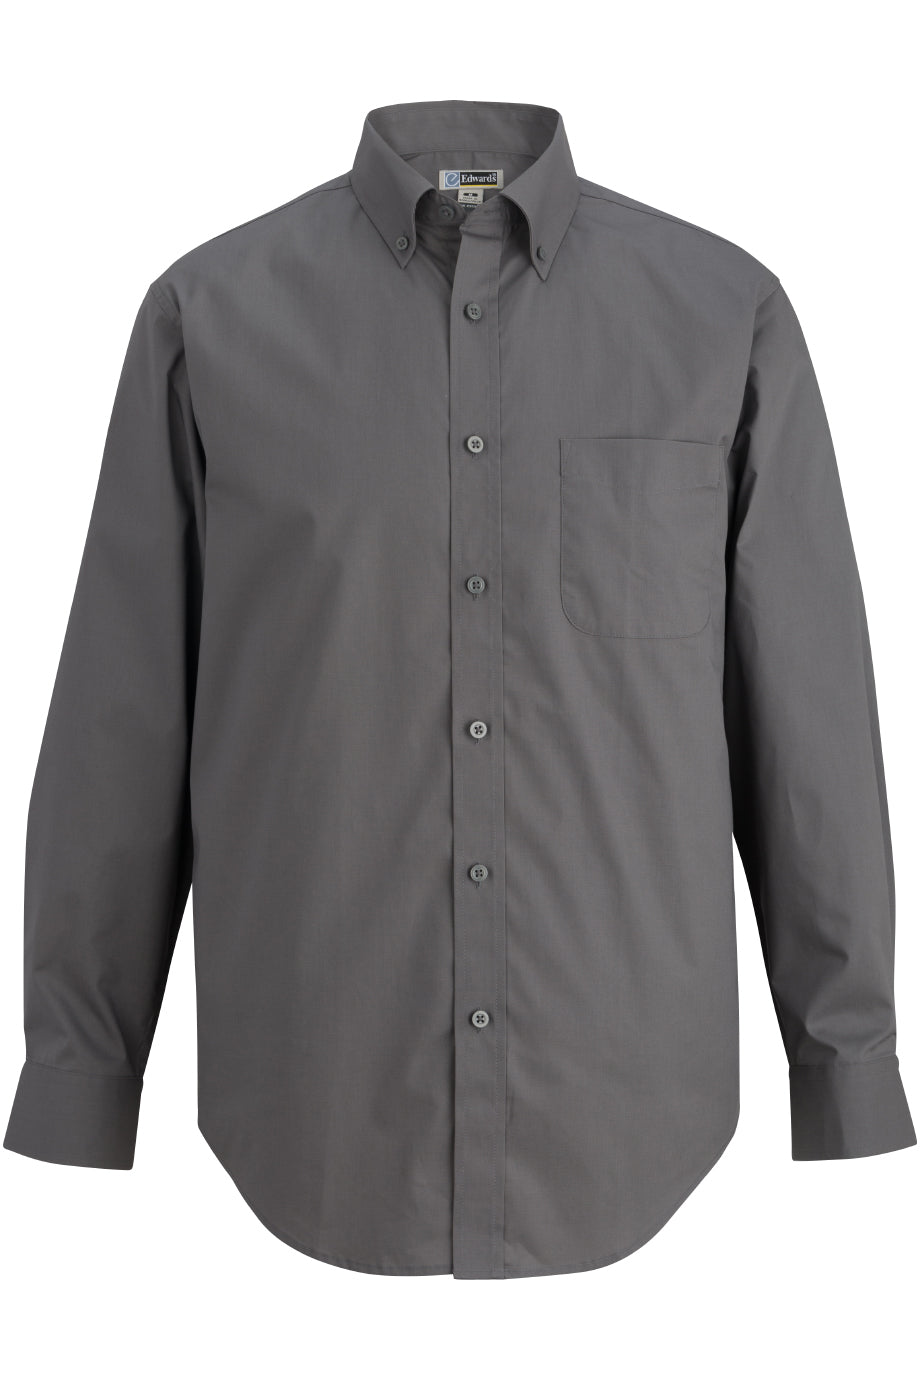 Charcoal Edwards Mens L/S Stretch Poplin Shirt